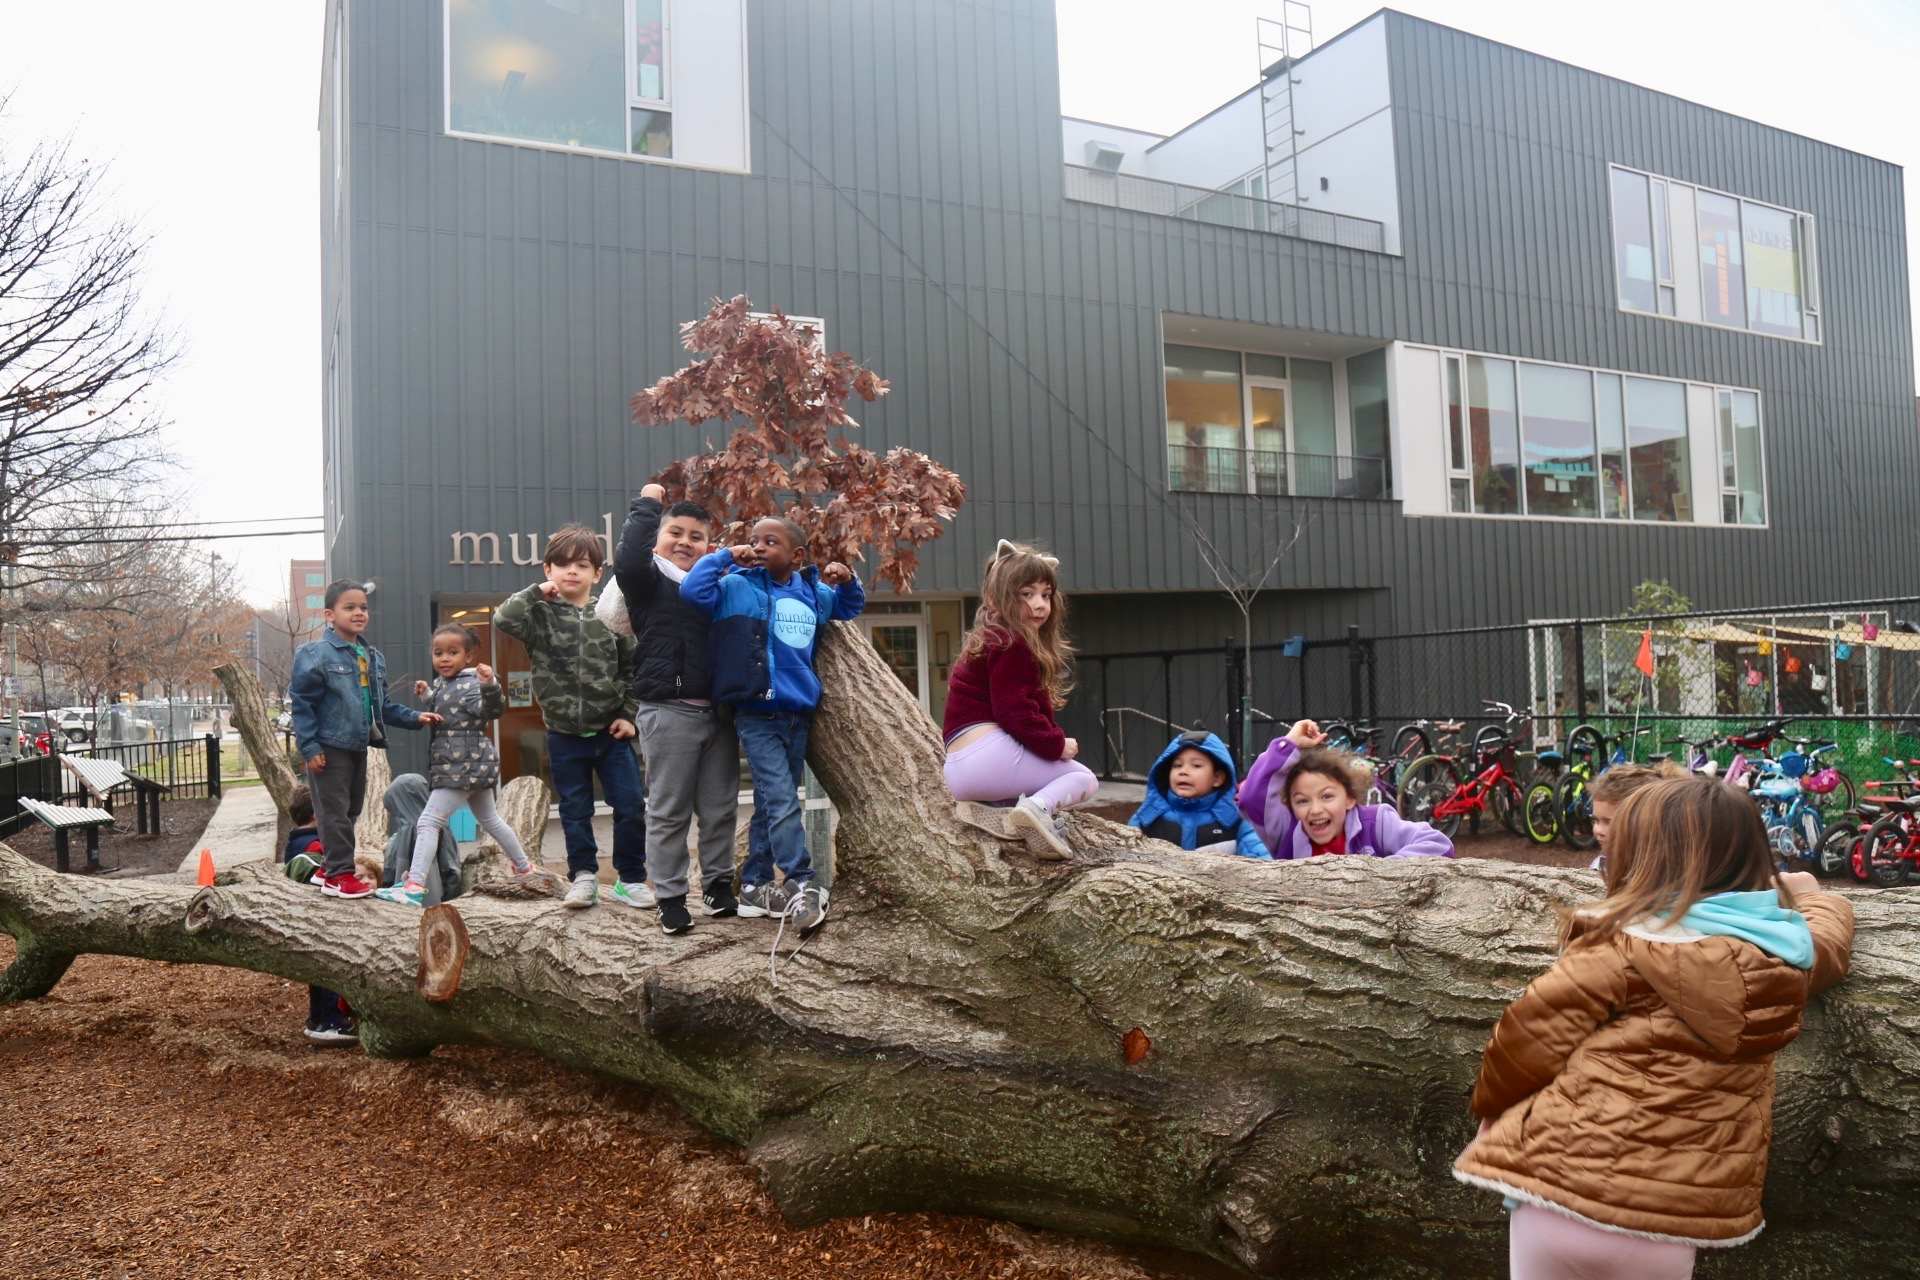 A dying willow oak, which was slated to be cut down in a nearby neighborhood, is now a focal point for Mundo Verde's playground.